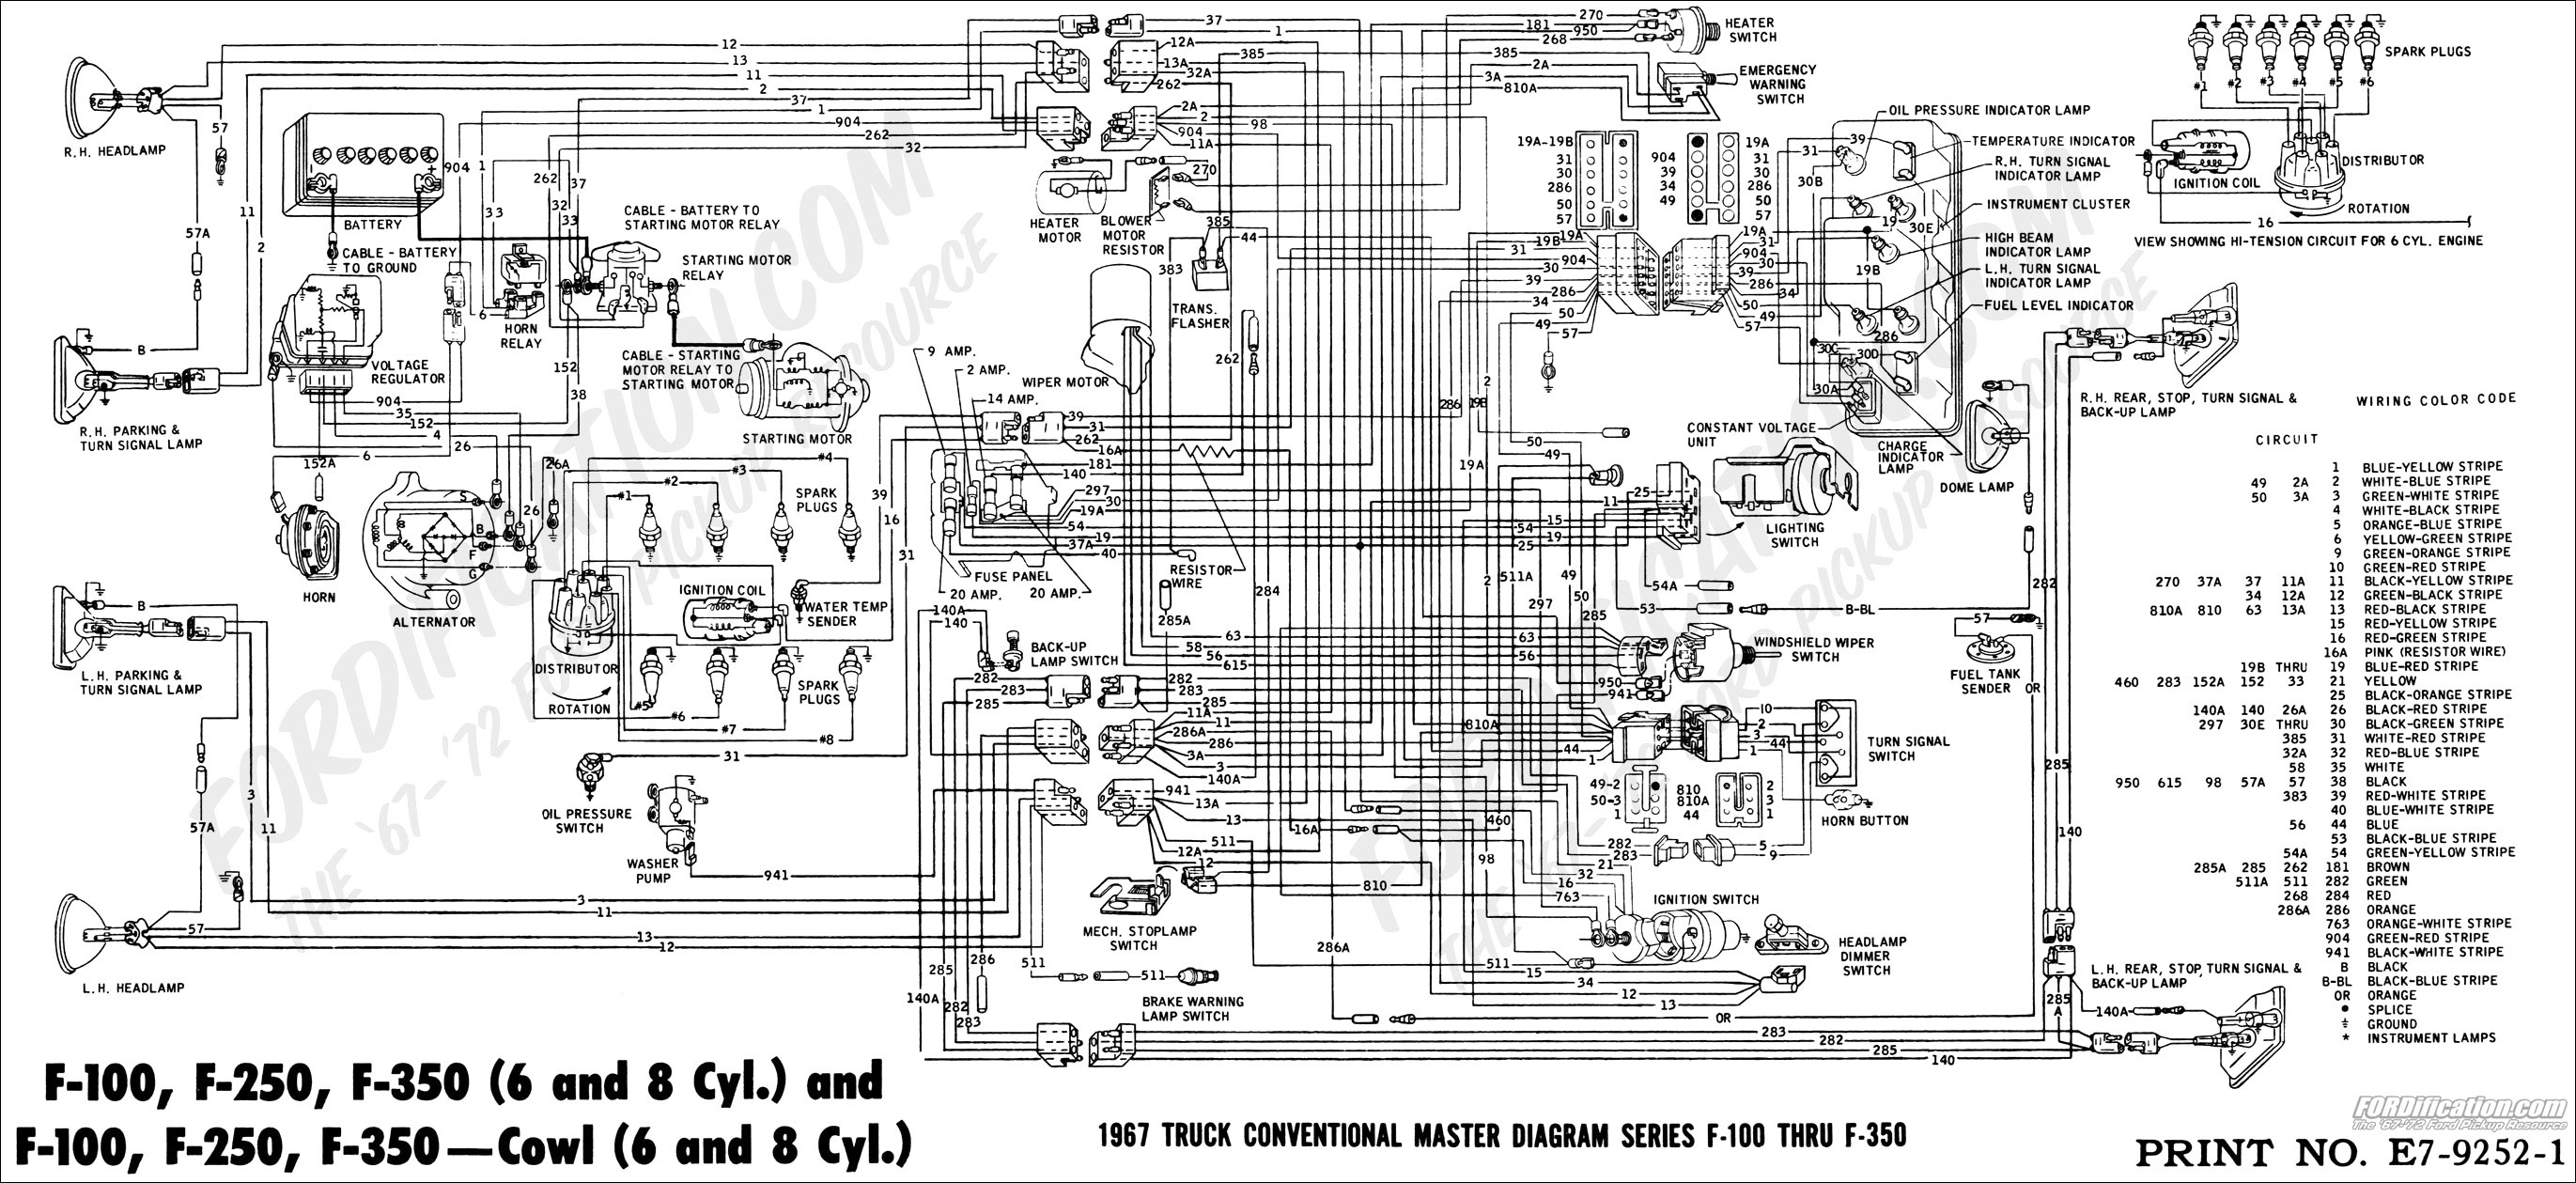 1994 Ford F150 Fuel System Diagram